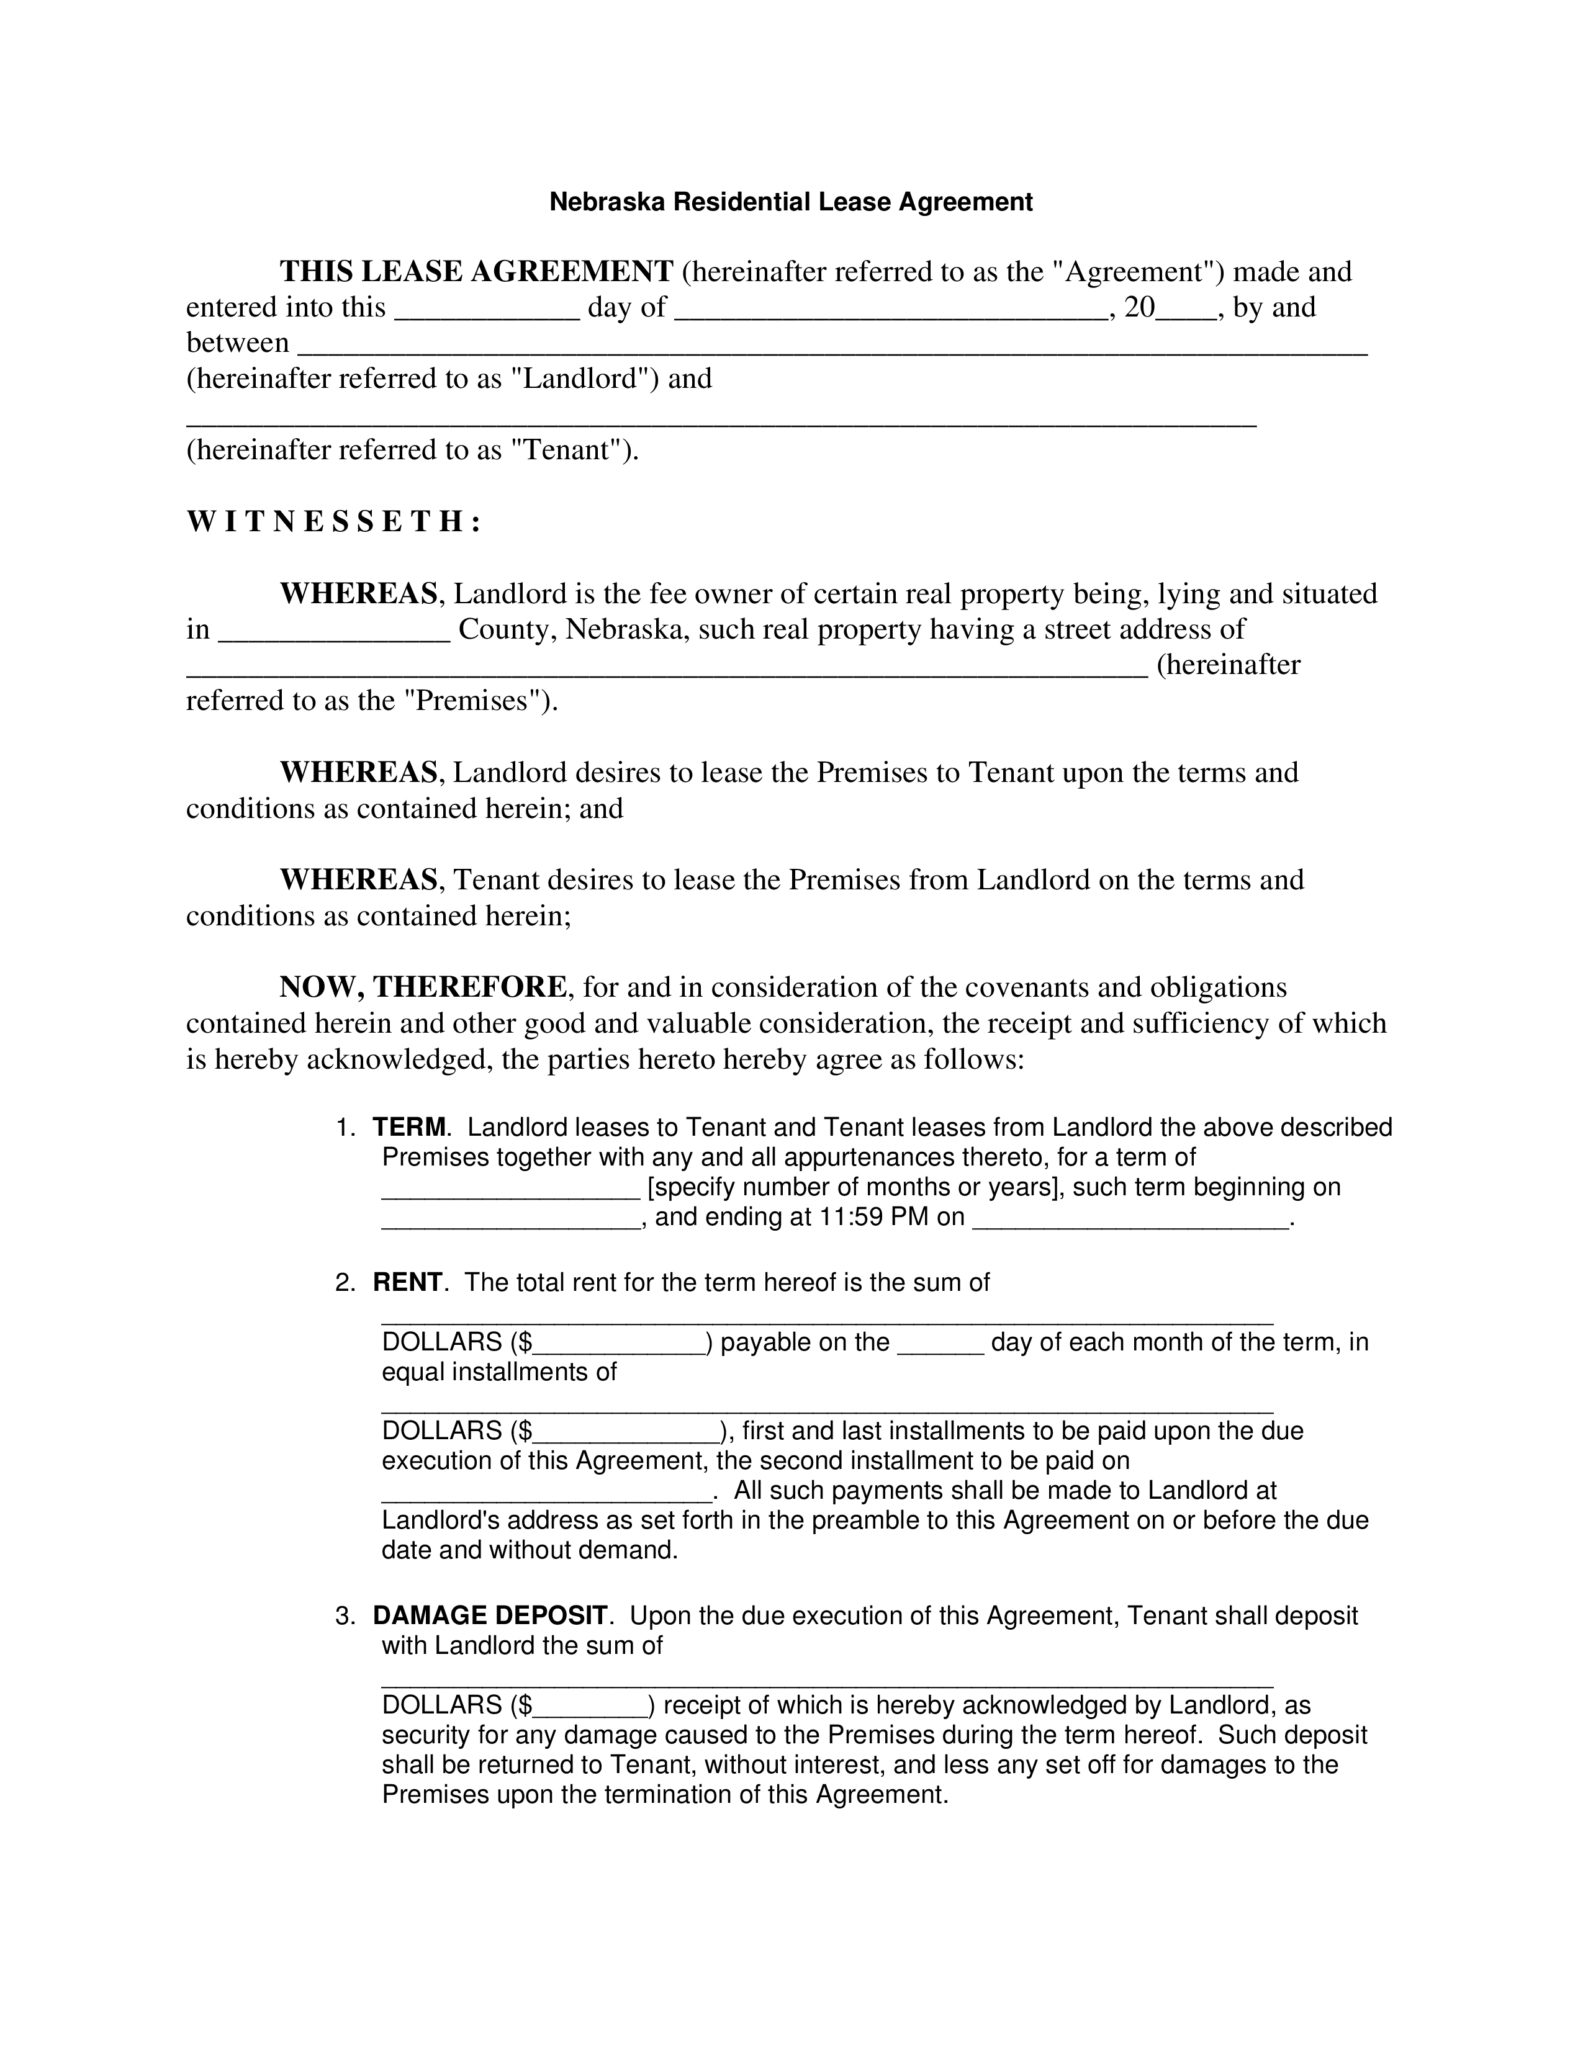 Nebraska Residential Lease Agreement